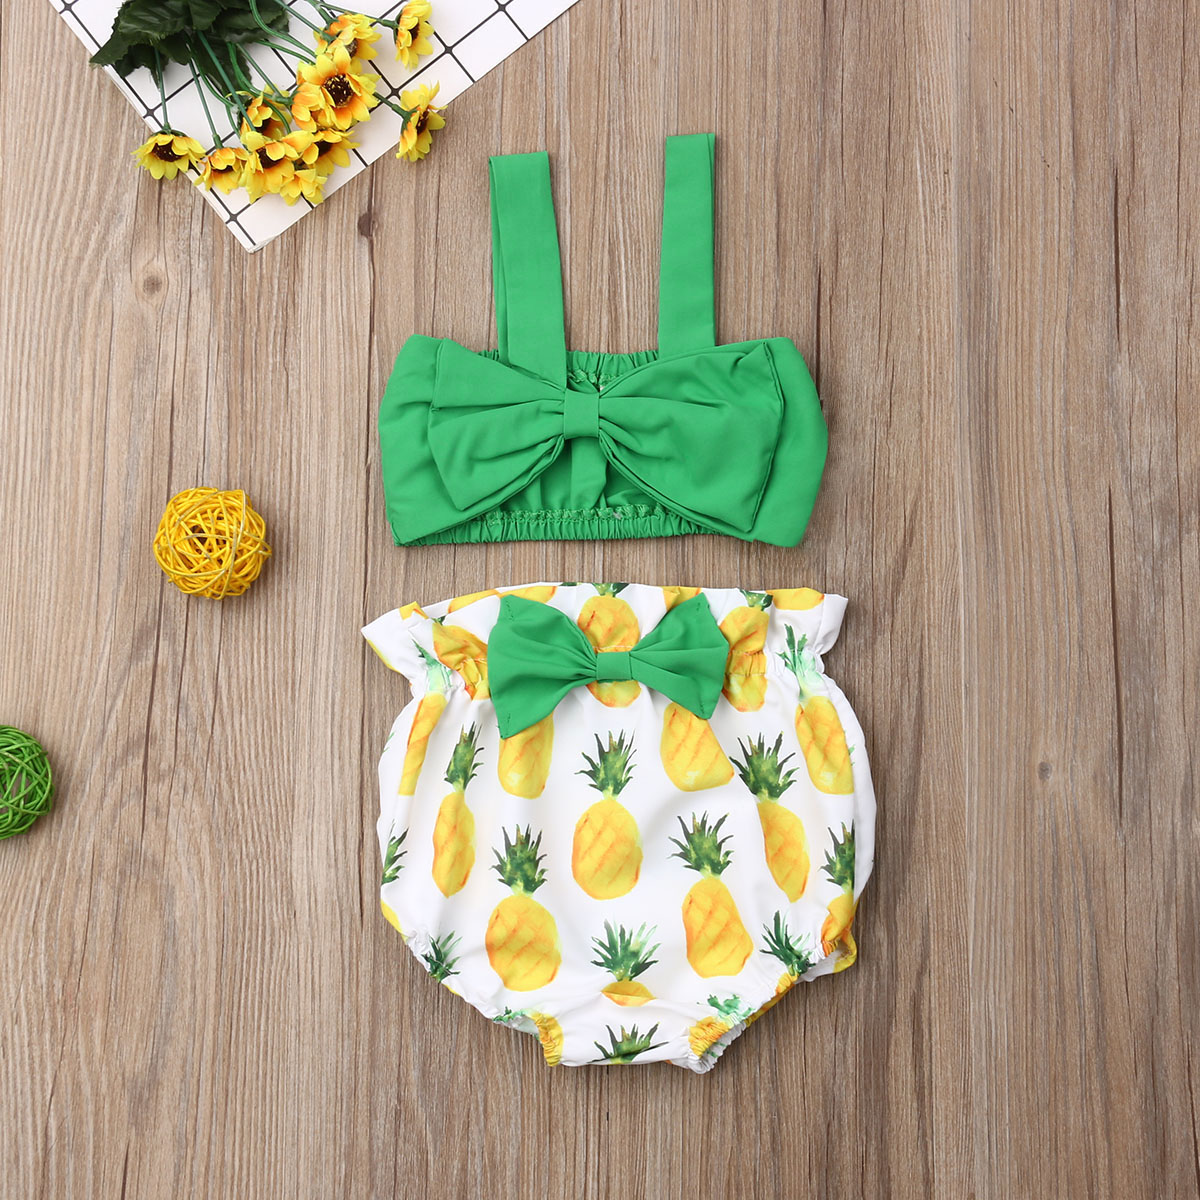 Pudcoco Newborn Baby Girl Clothes Bowknot Strap Vest Crop Tops Pineapple Print Short Pants 2Pcs Outfits Clothes Summer